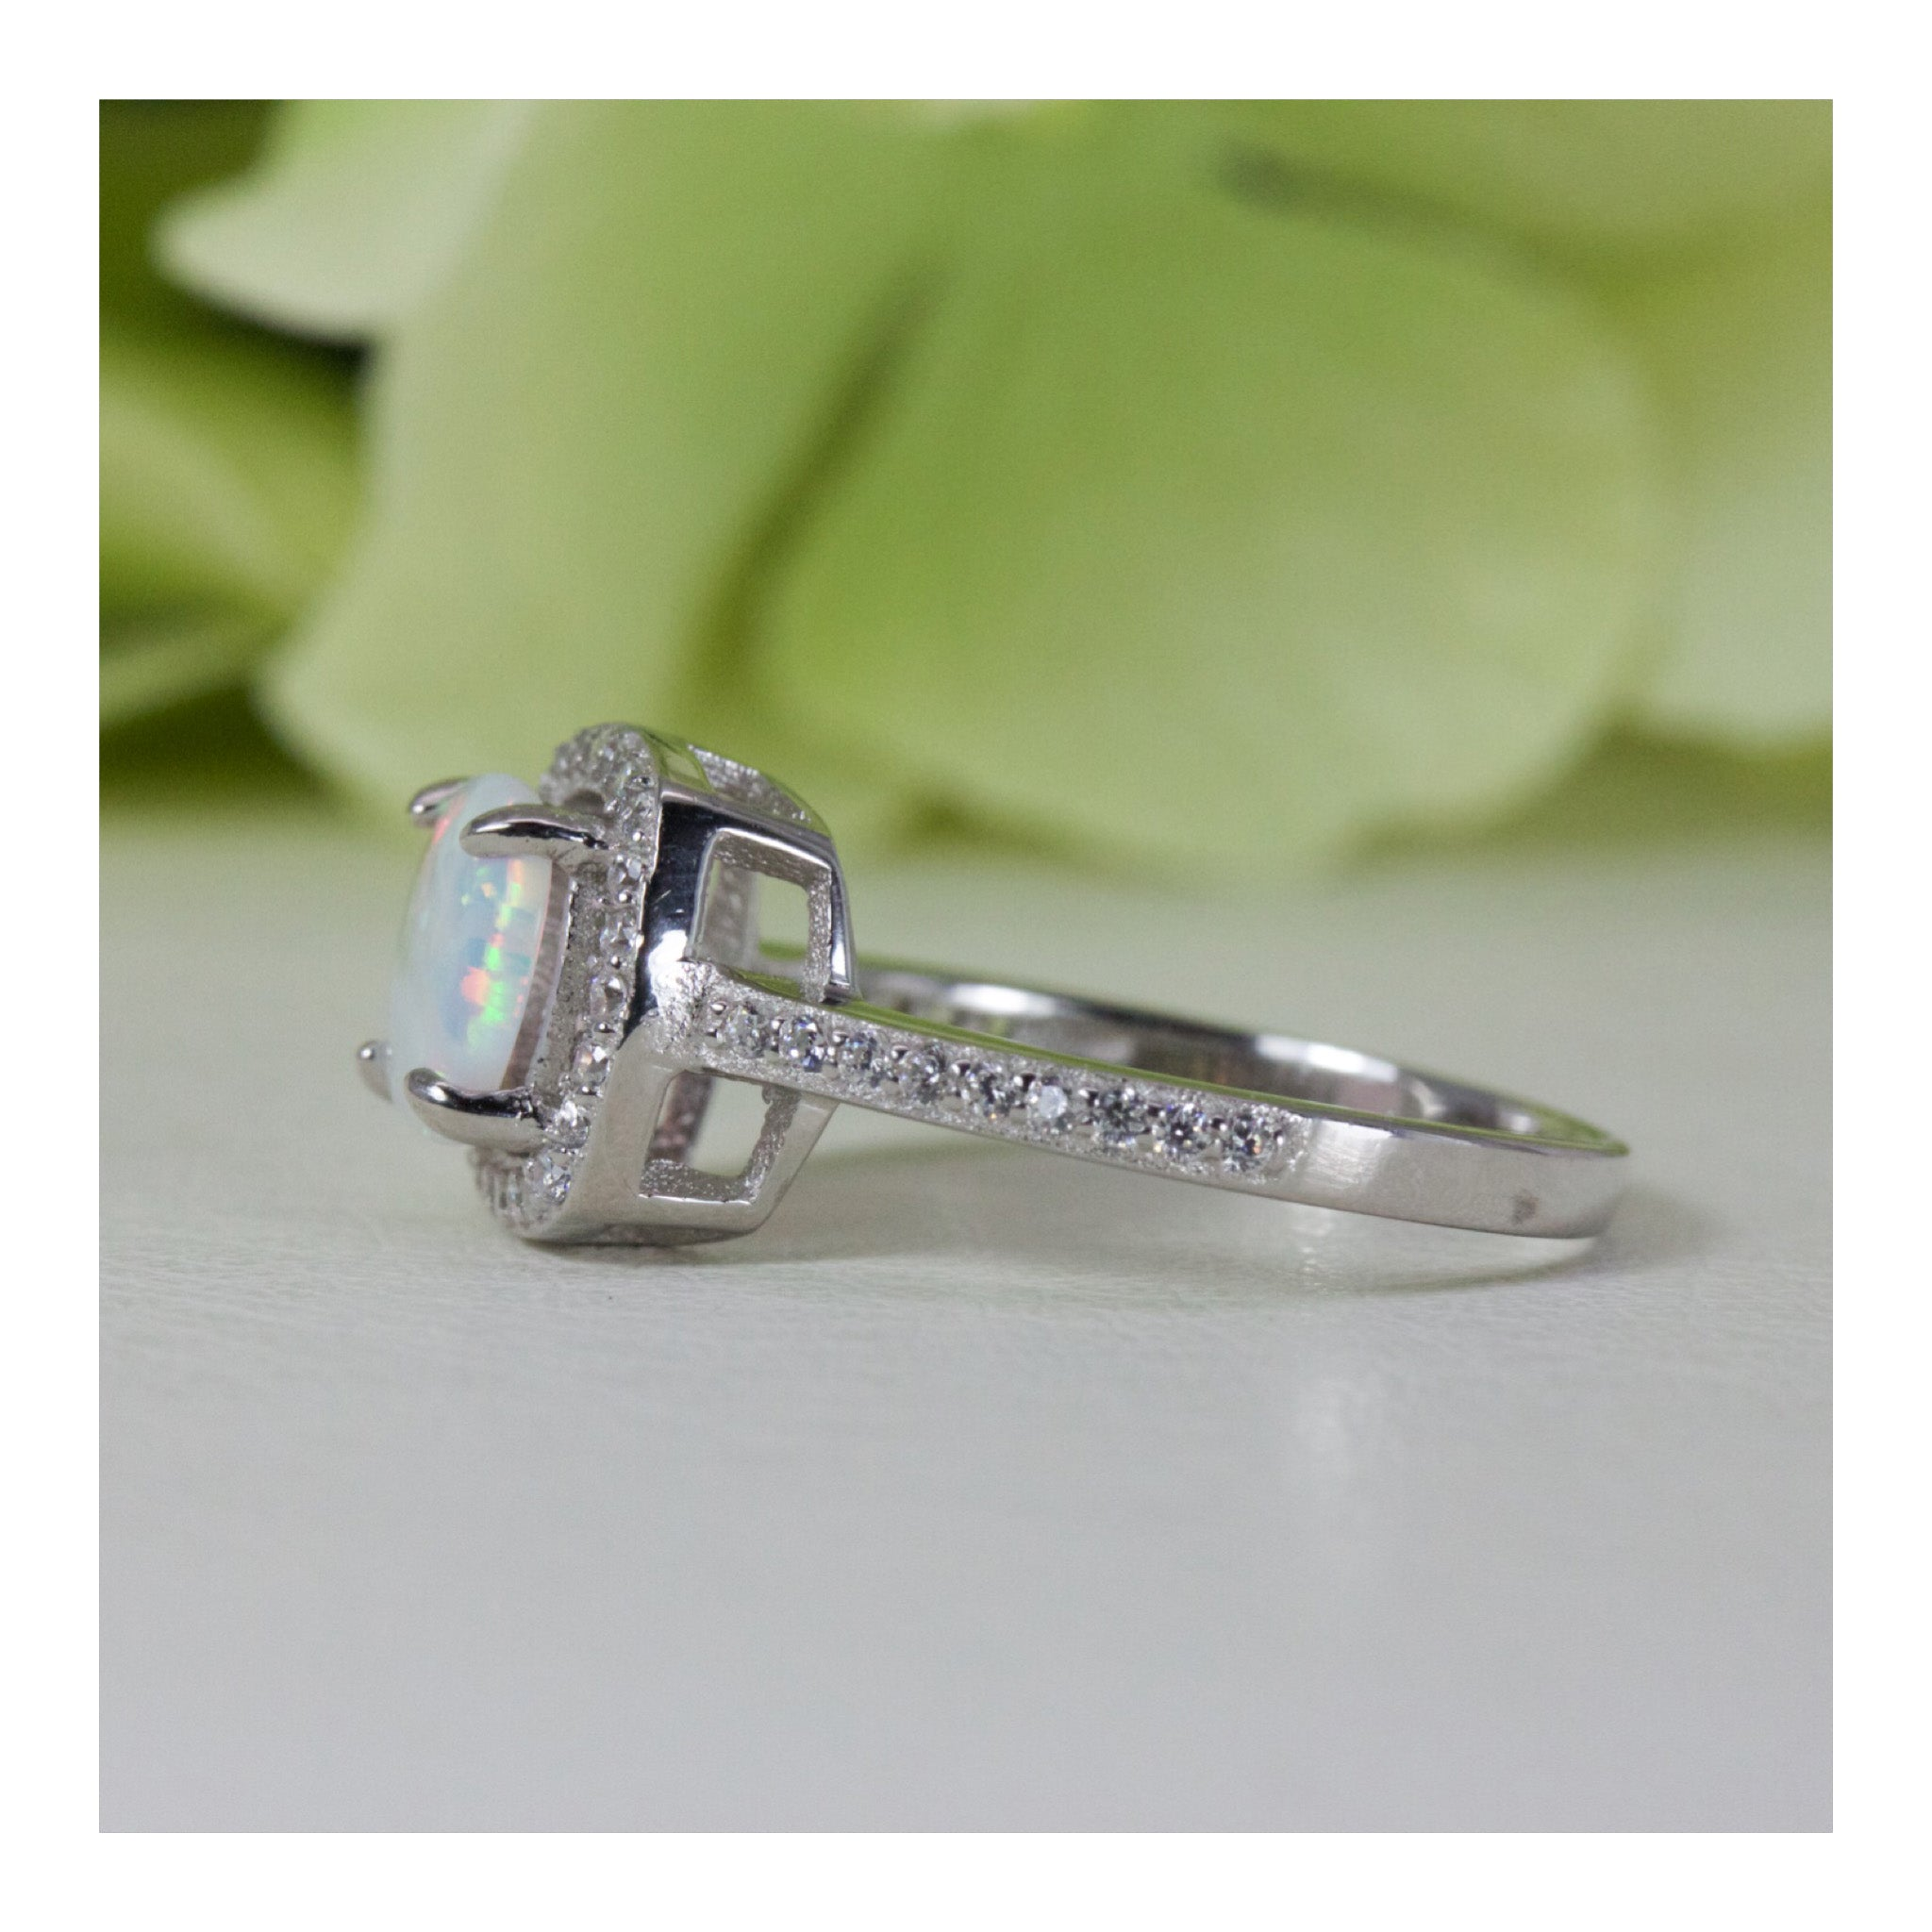 rings idea in sale silver of wedding new cubic ring carat engagement antique zirconia beautiful on